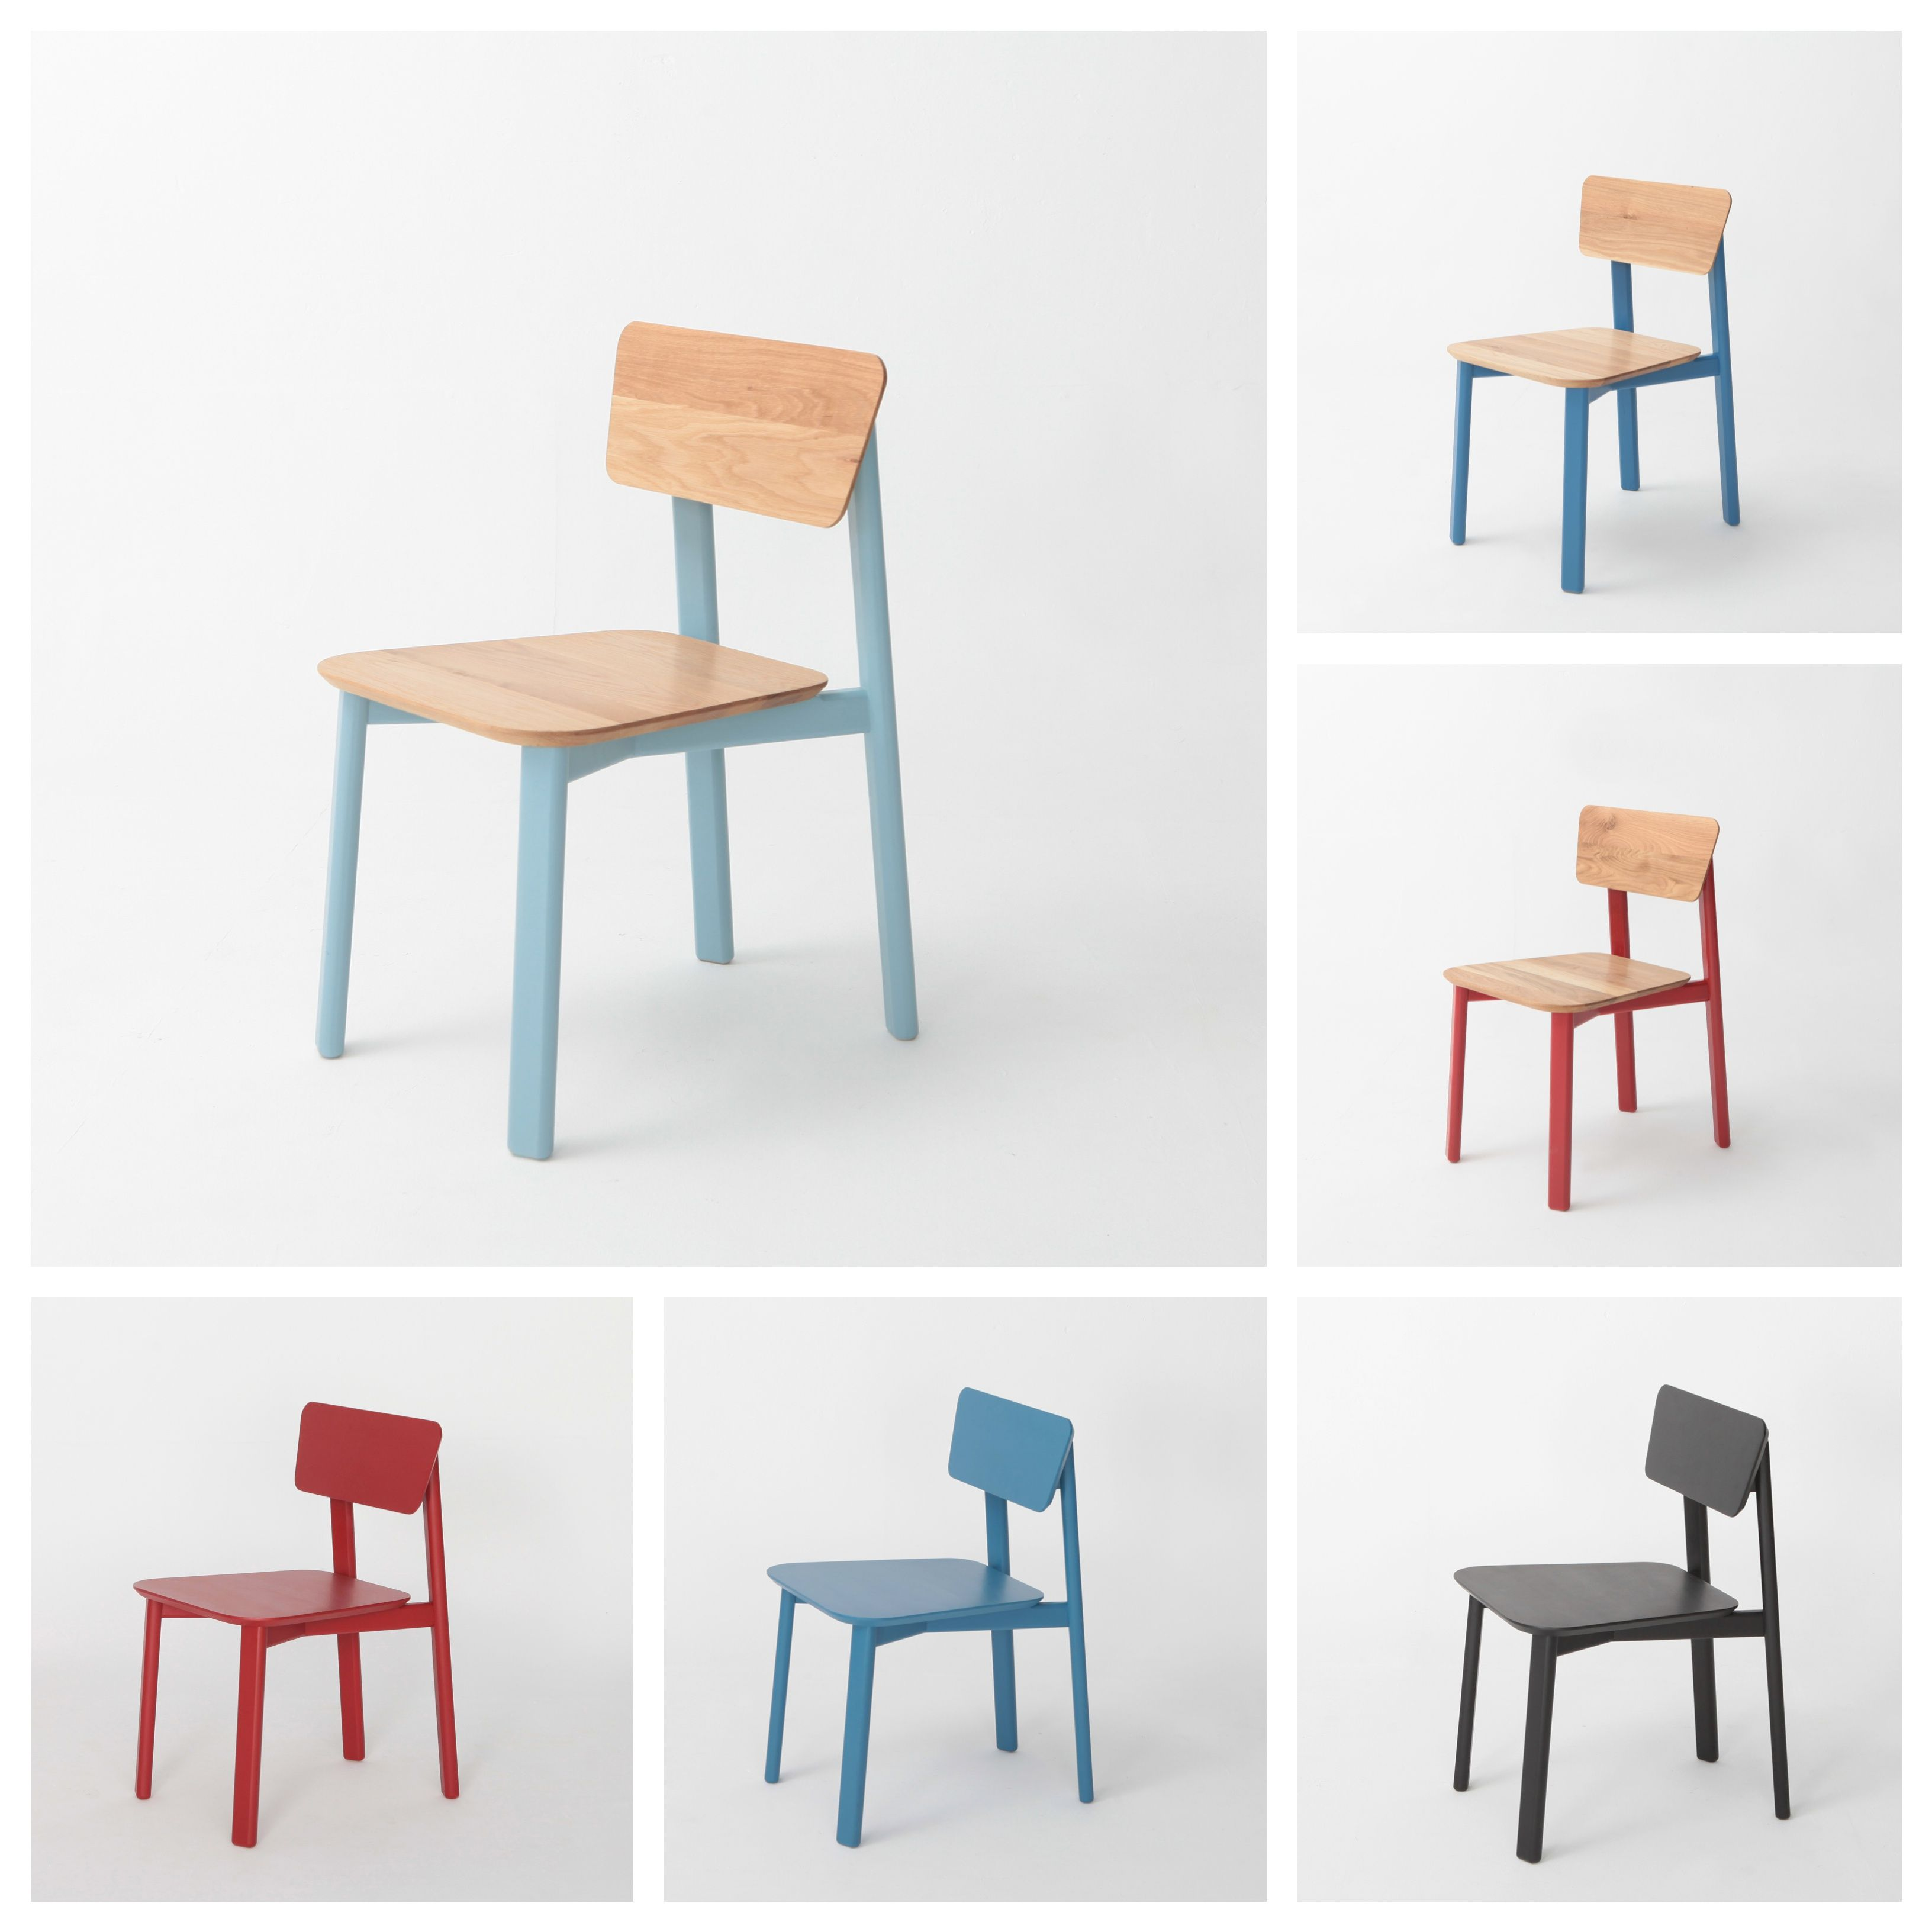 BONNIE Chair By Elmo Hong Kong Solid Wood Dining Made From FSC Certified